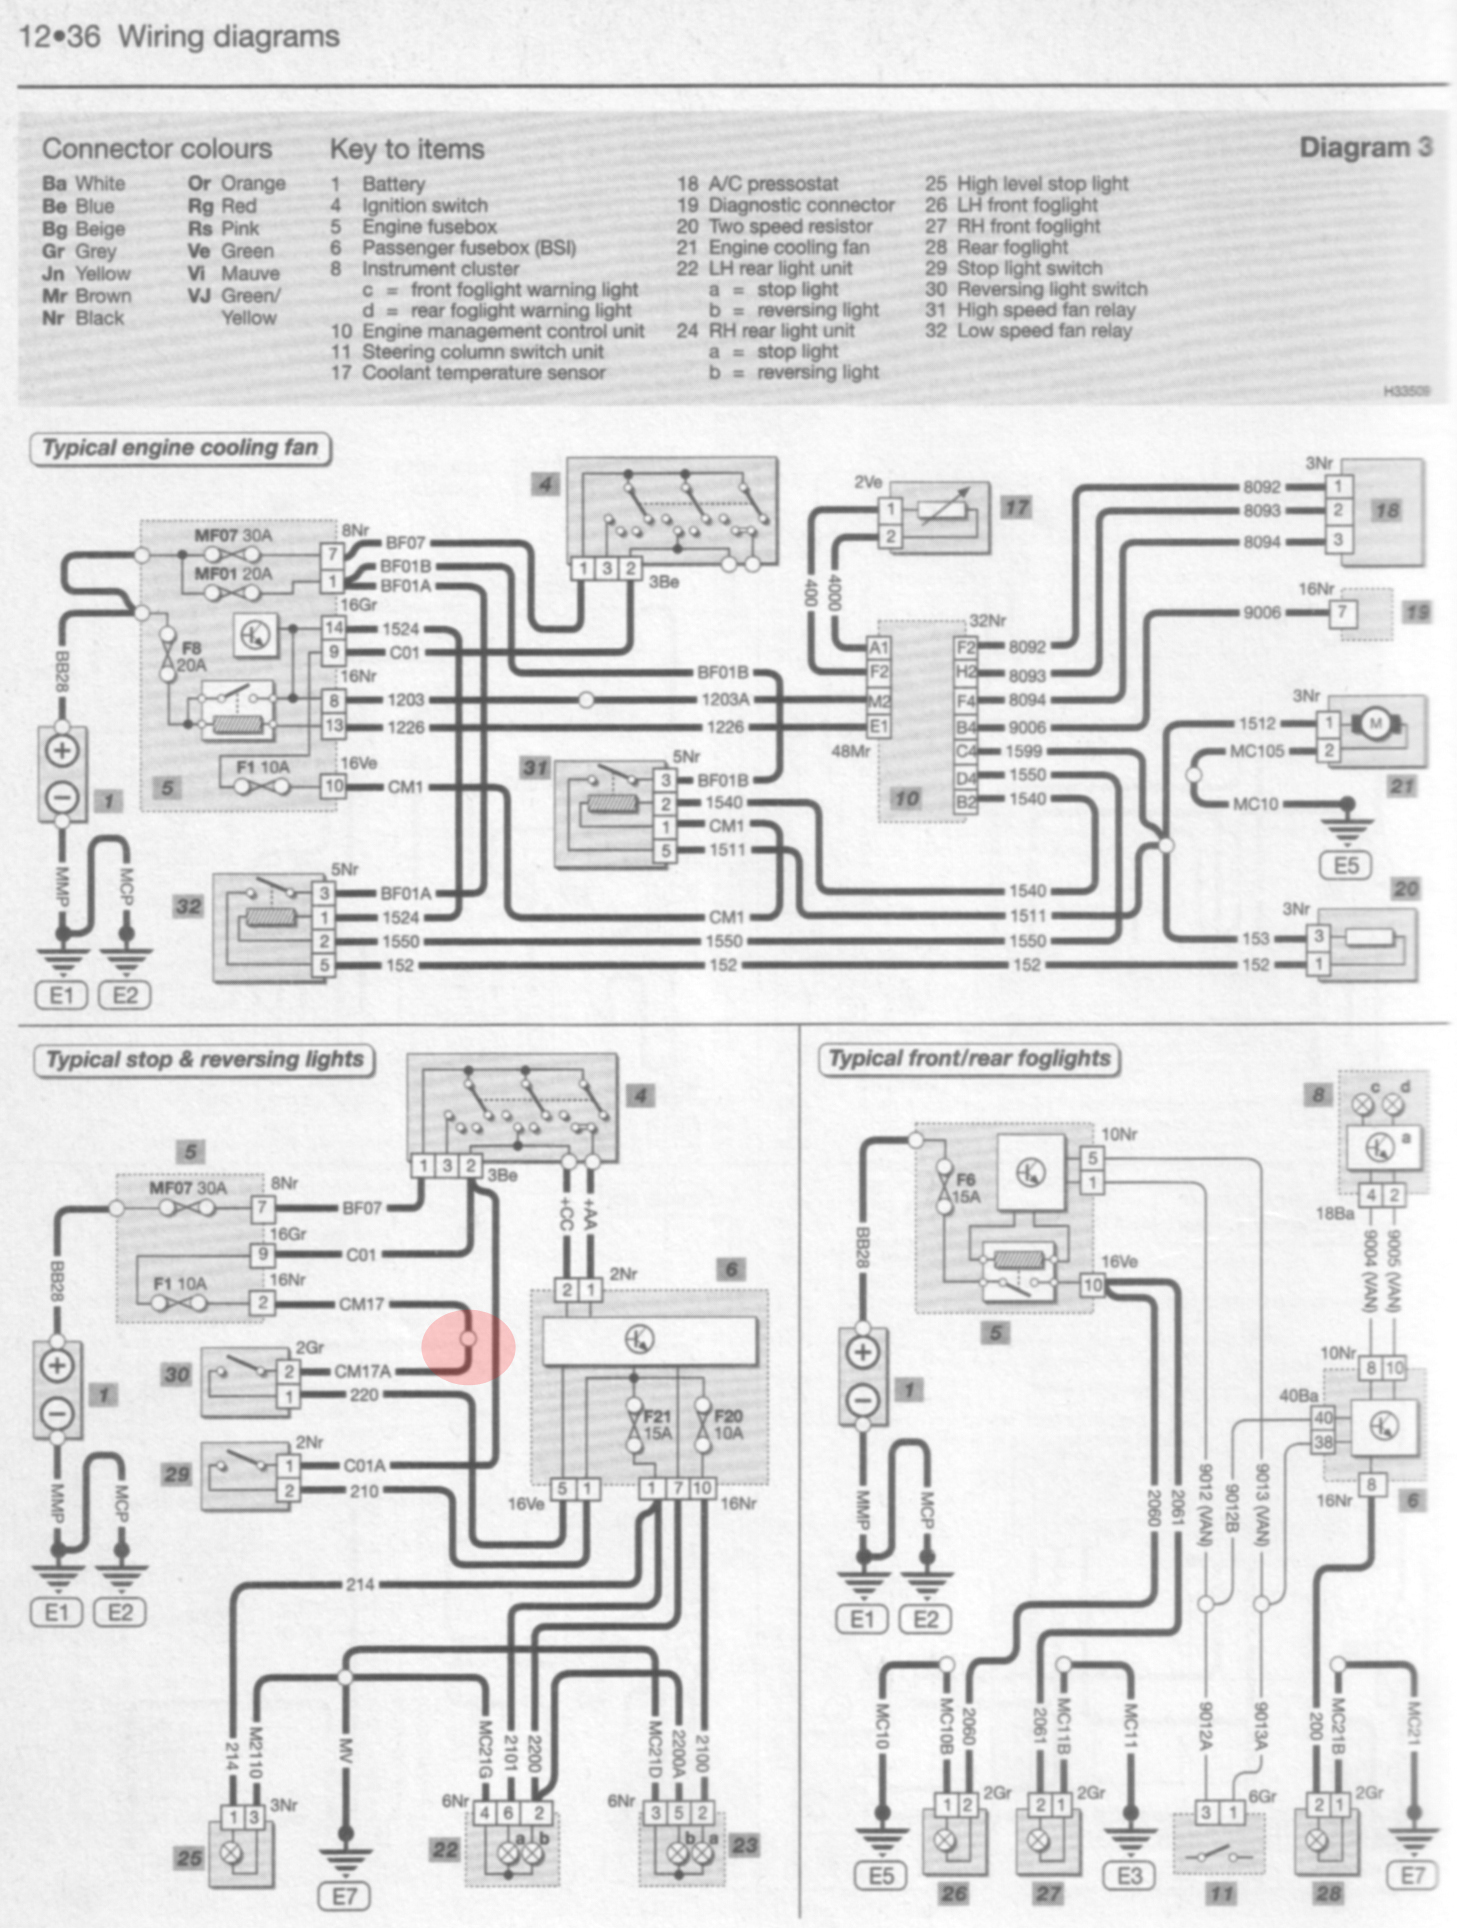 Sony Cdx Wiring Diagram Pin in addition Ecu Fuse Location moreover 1962 Chrysler 300 Wiring Diagram in addition Chevy Trailer Wiring Diagram furthermore 1979 Holiday Rambler Wiring Diagram. on chevy radio wiring diagram